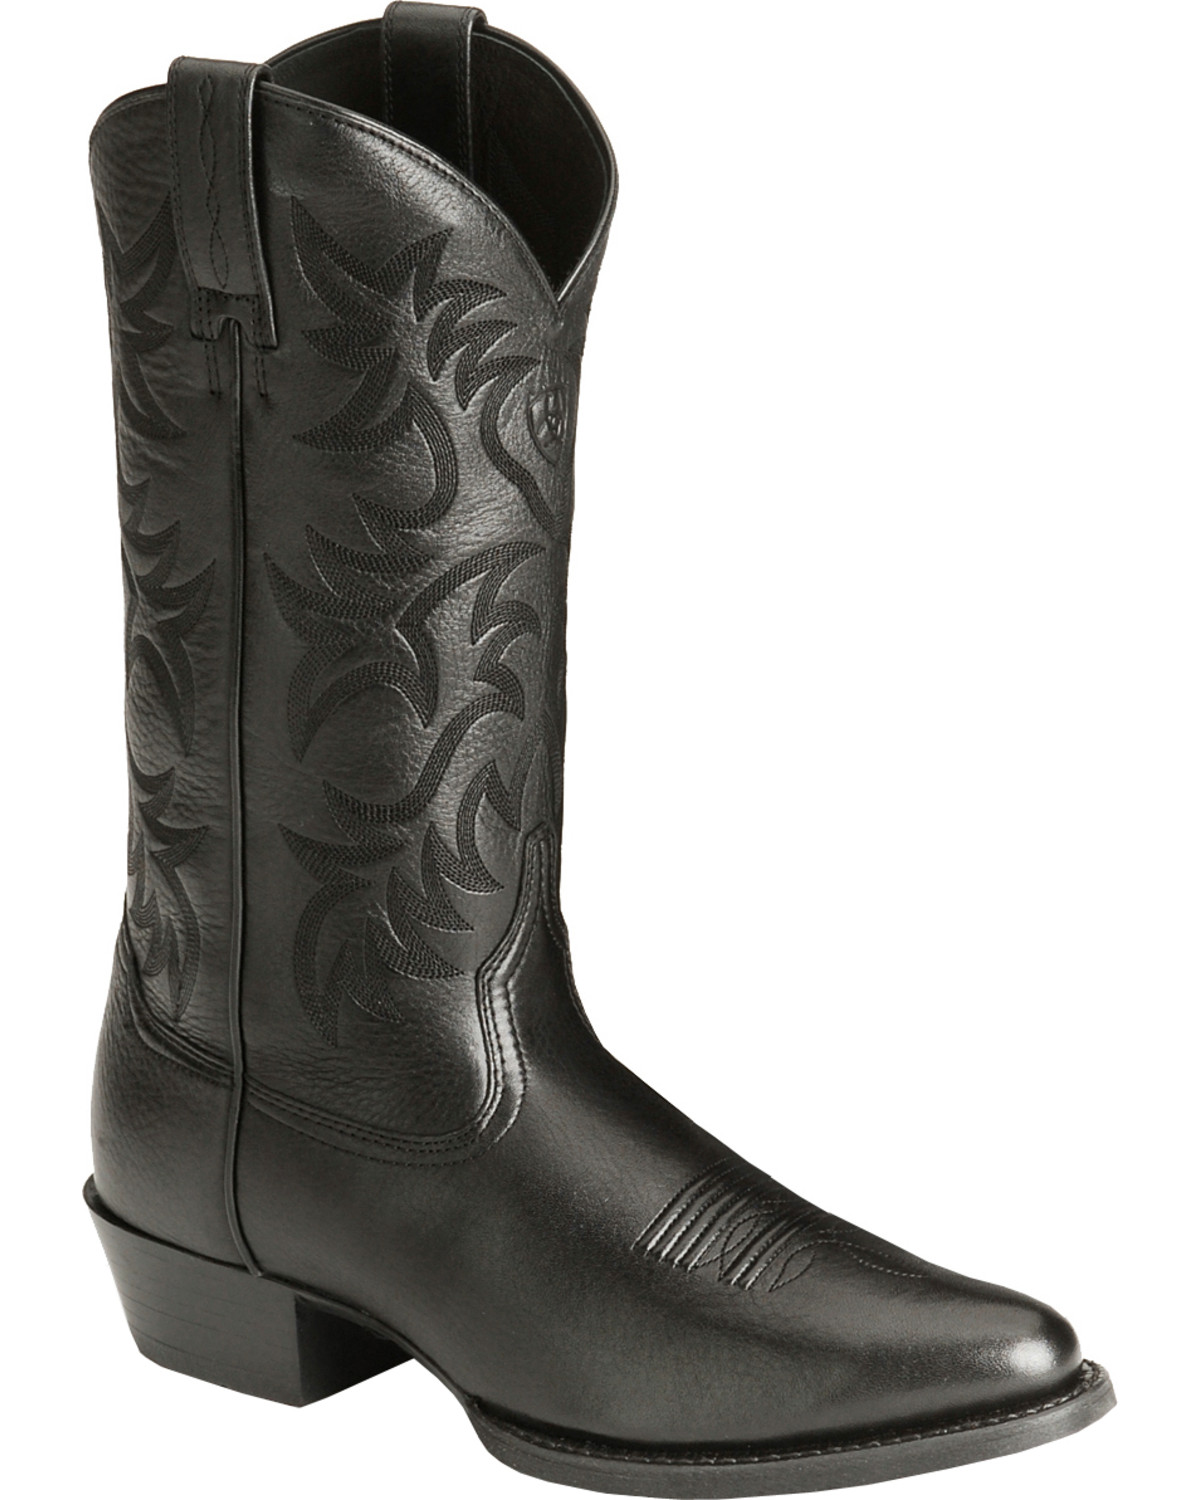 Ariat Heritage Deertan Cowboy Boots - Country Outfitter